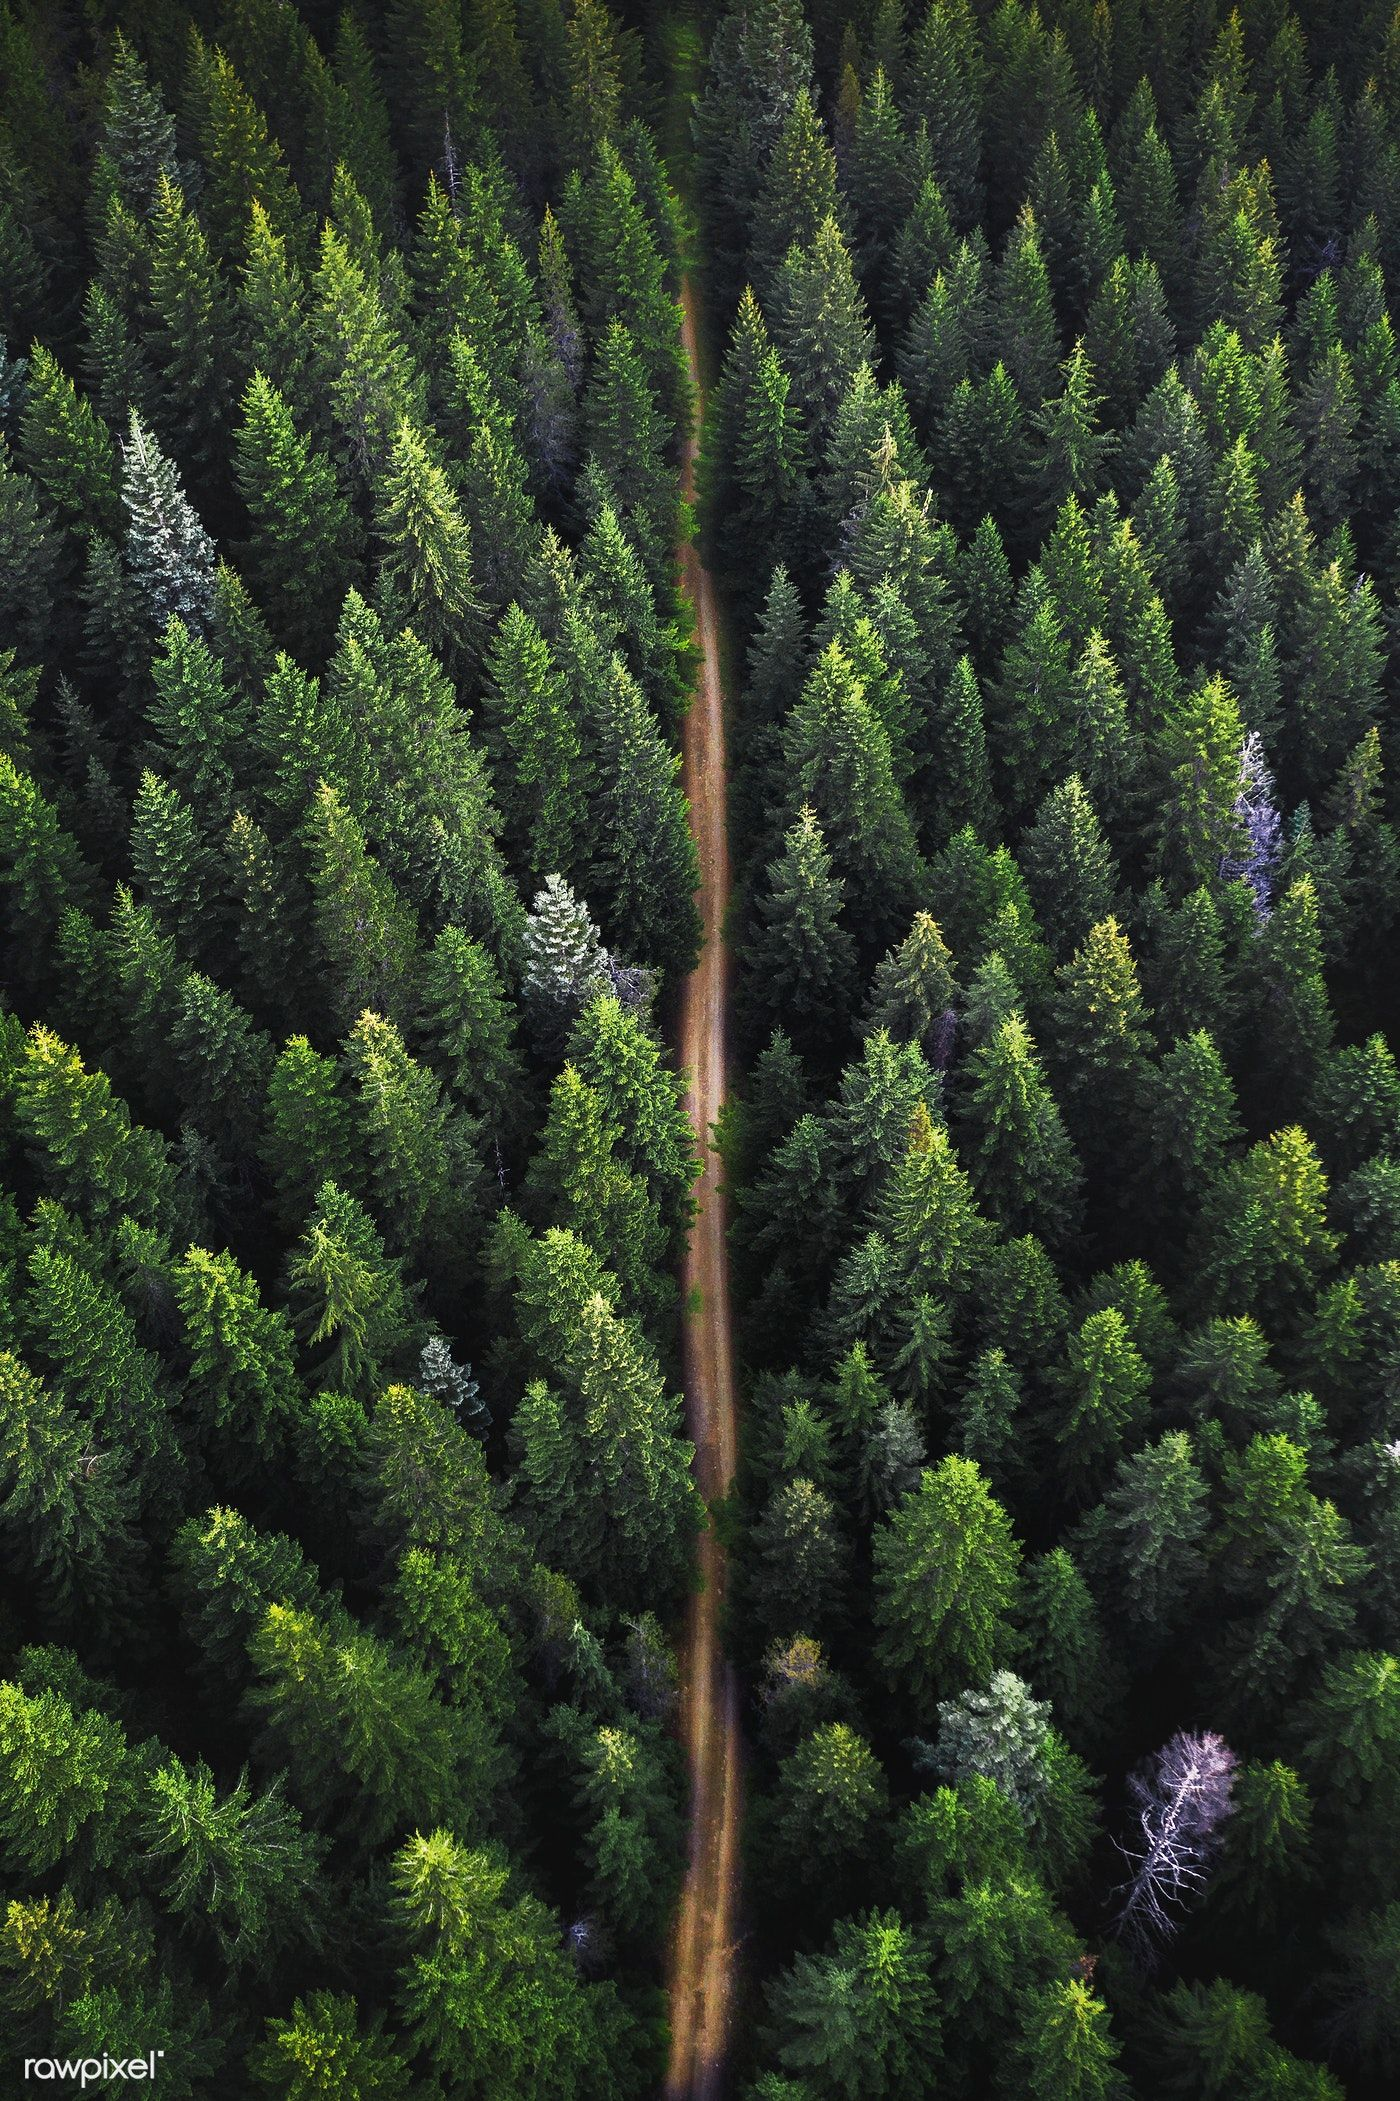 Drone View Of A Green Forest And A Dirt Road Passing Through Premium Image By Rawpixel Co Landscape Photography Nature Drone Photography Landscape Drone View